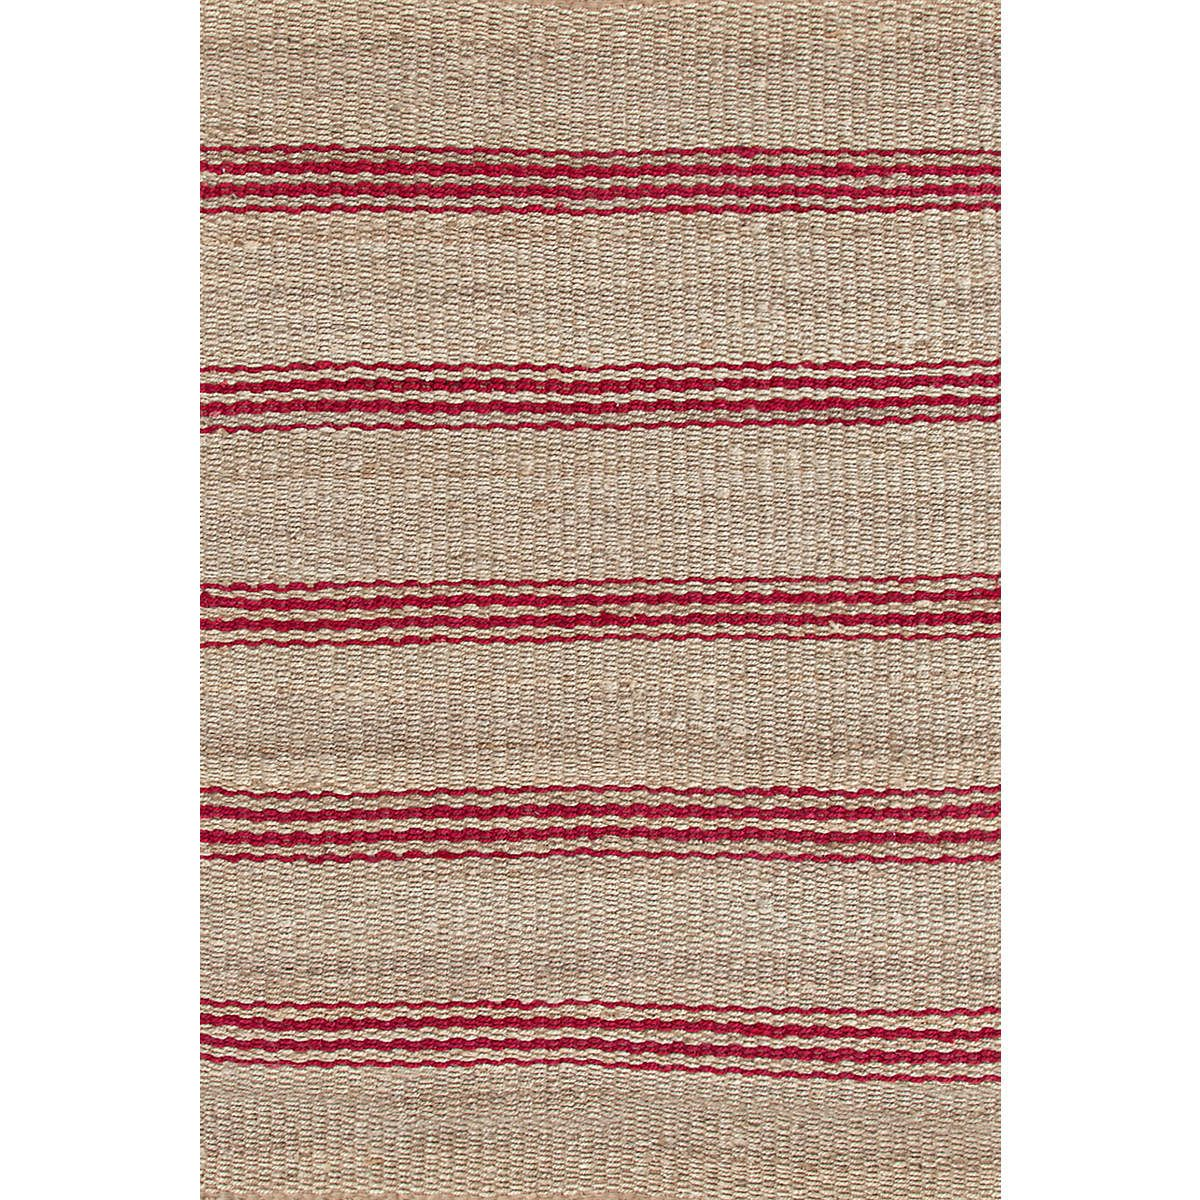 Our New Eco Friendly Jute Area Rugs Are Instant Style